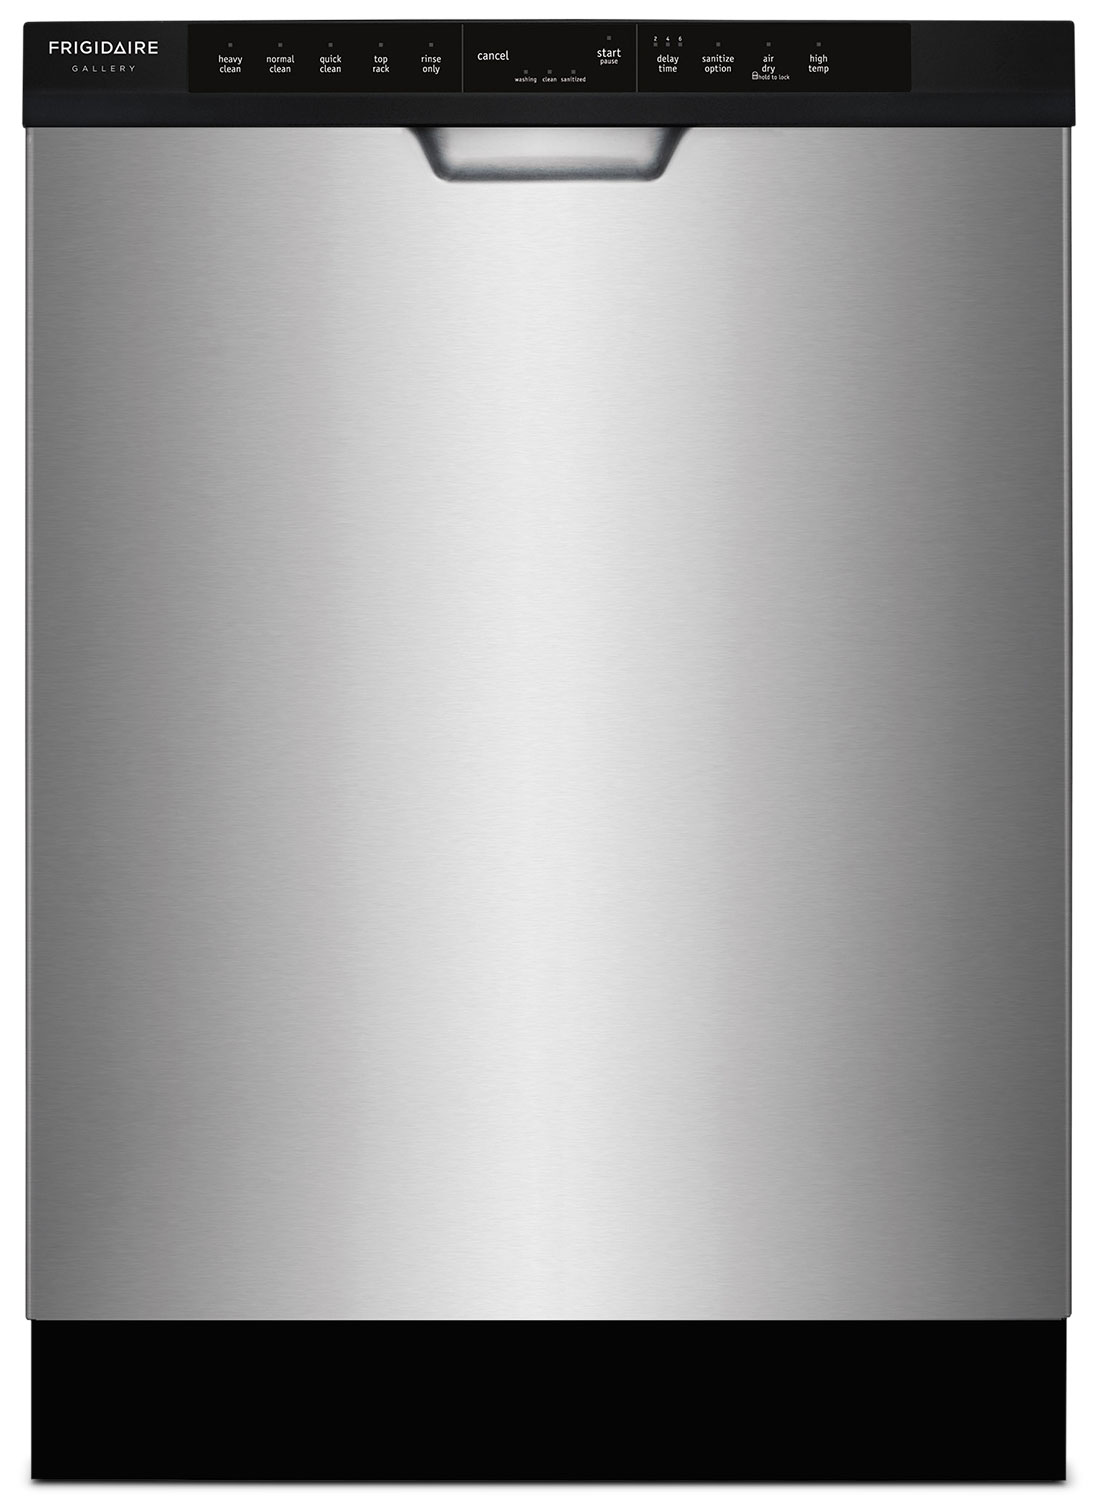 "Frigidaire Gallery Stainless Steel 24"" Dishwasher - FGCD2444SF"